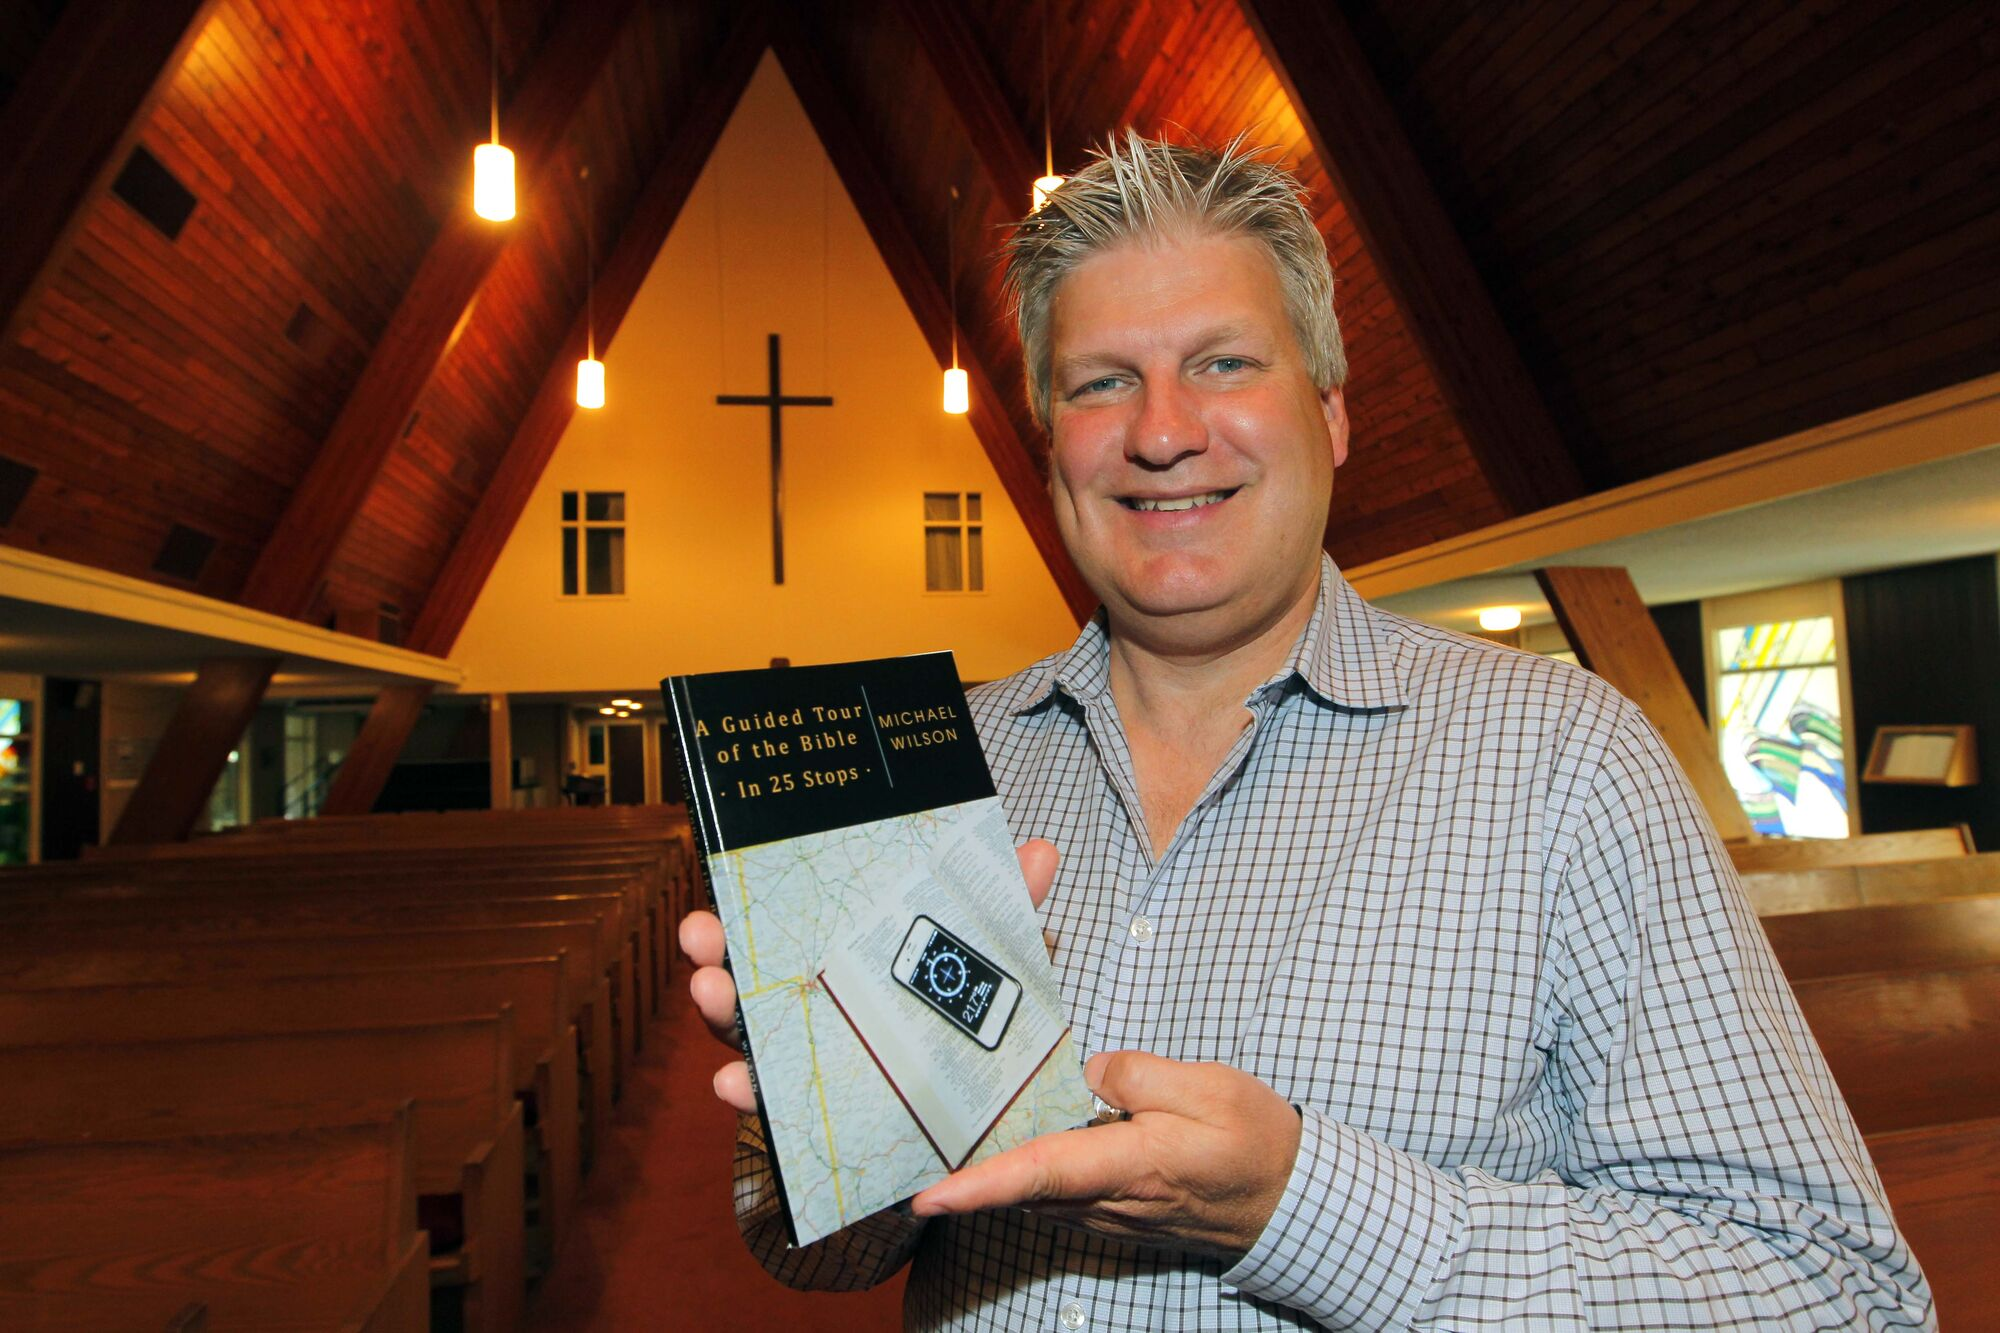 United Church Rev. Michael Wilson publishes guided tour of the Bible.